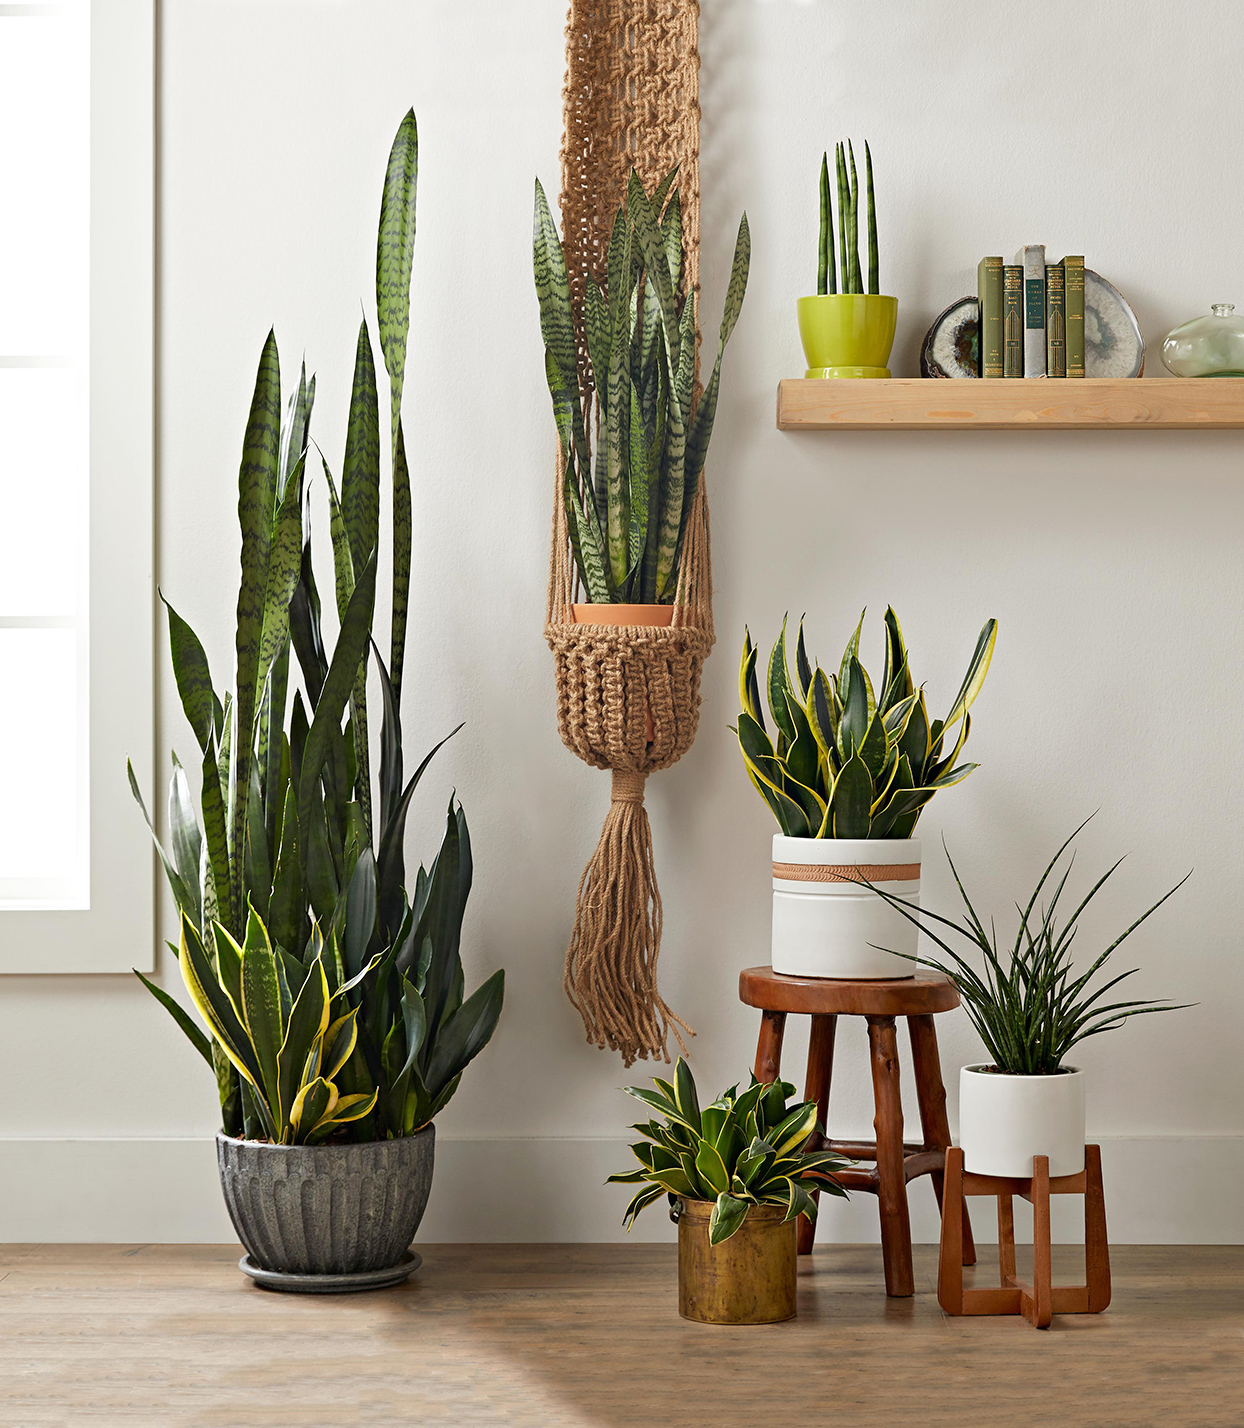 house plants, planters, and stands